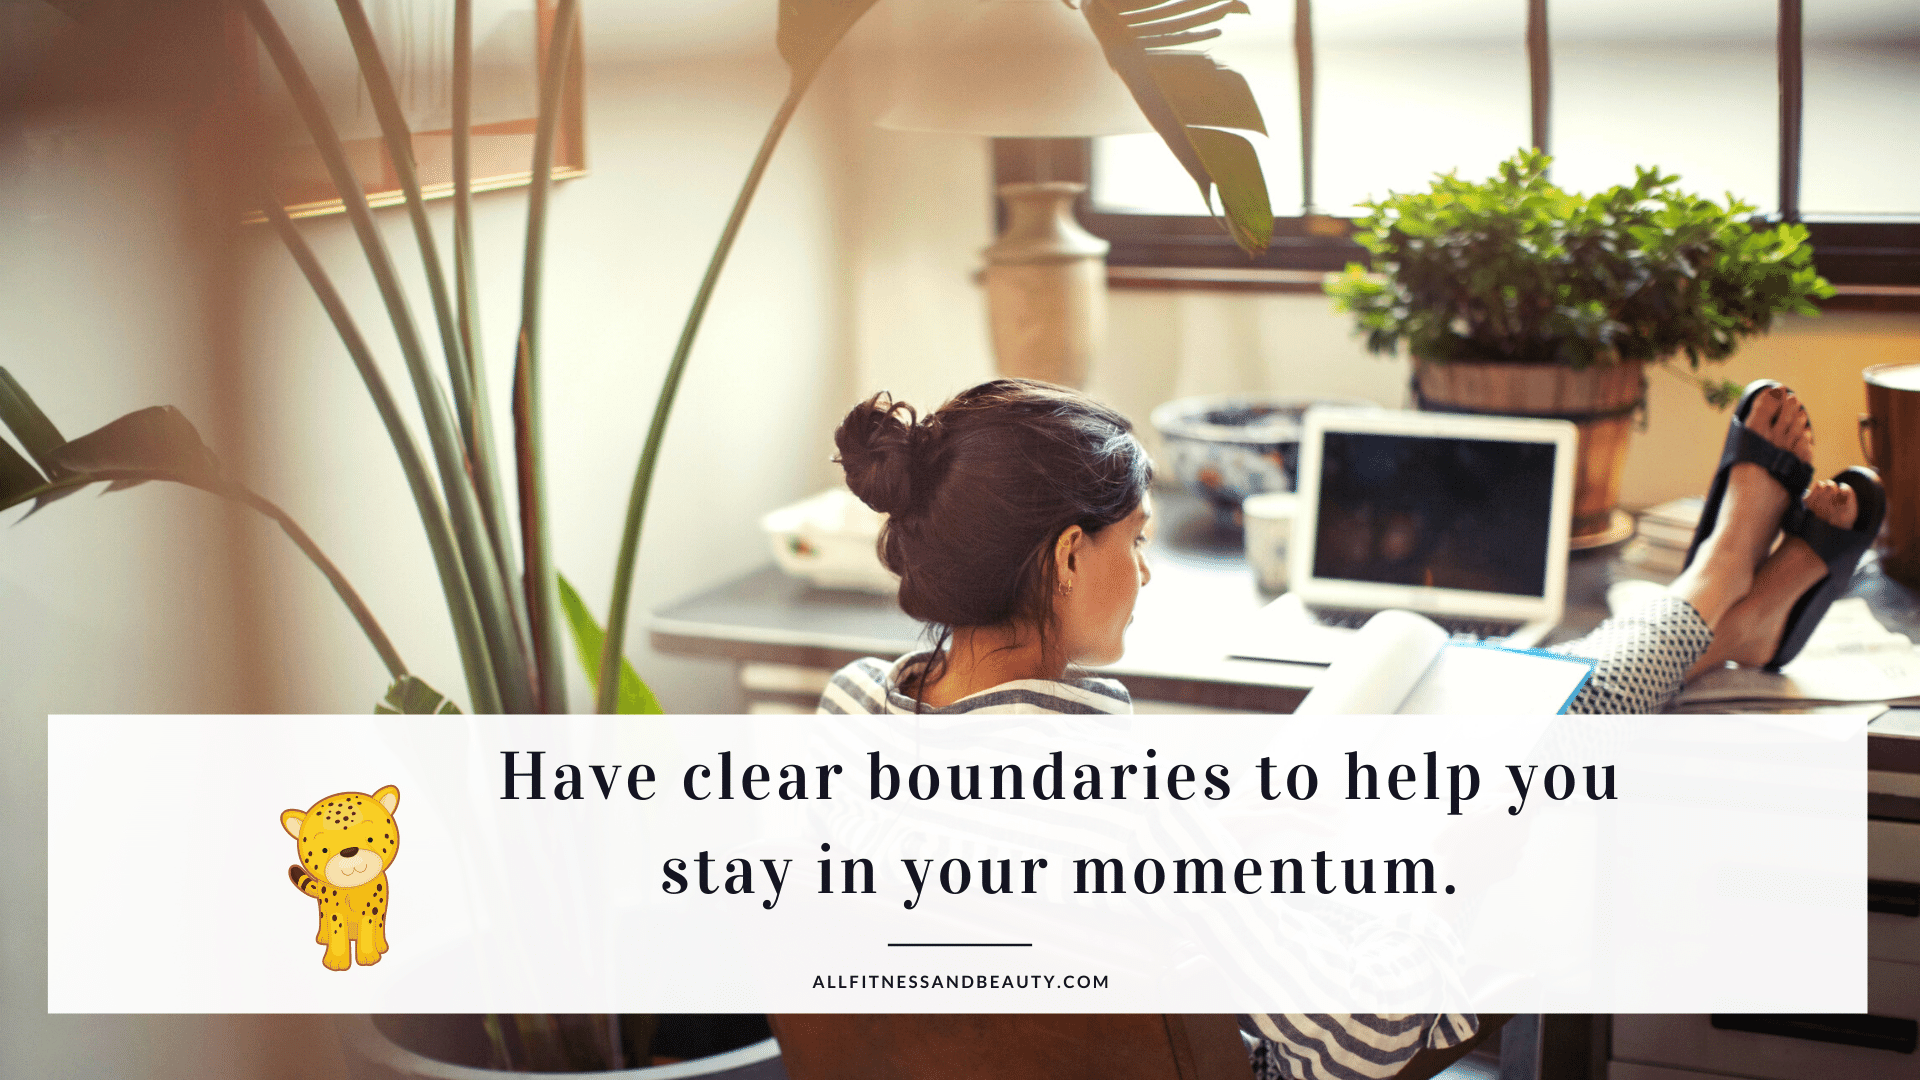 work from home more effectively - clear boundaries